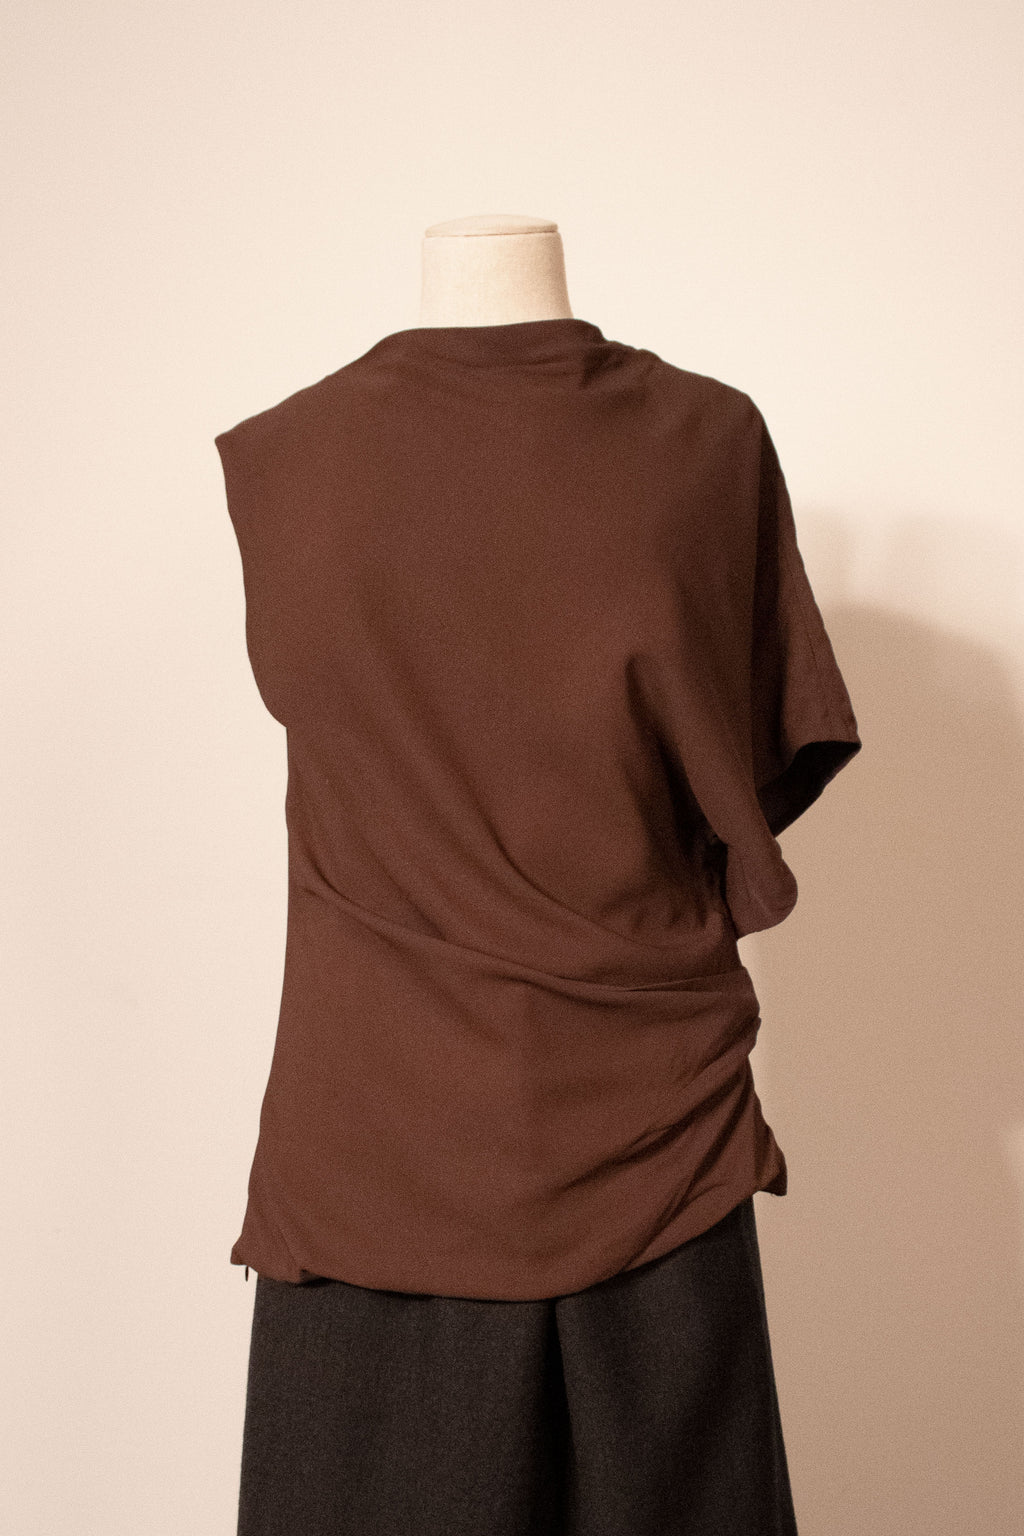 Balenciaga brown draped rayon top